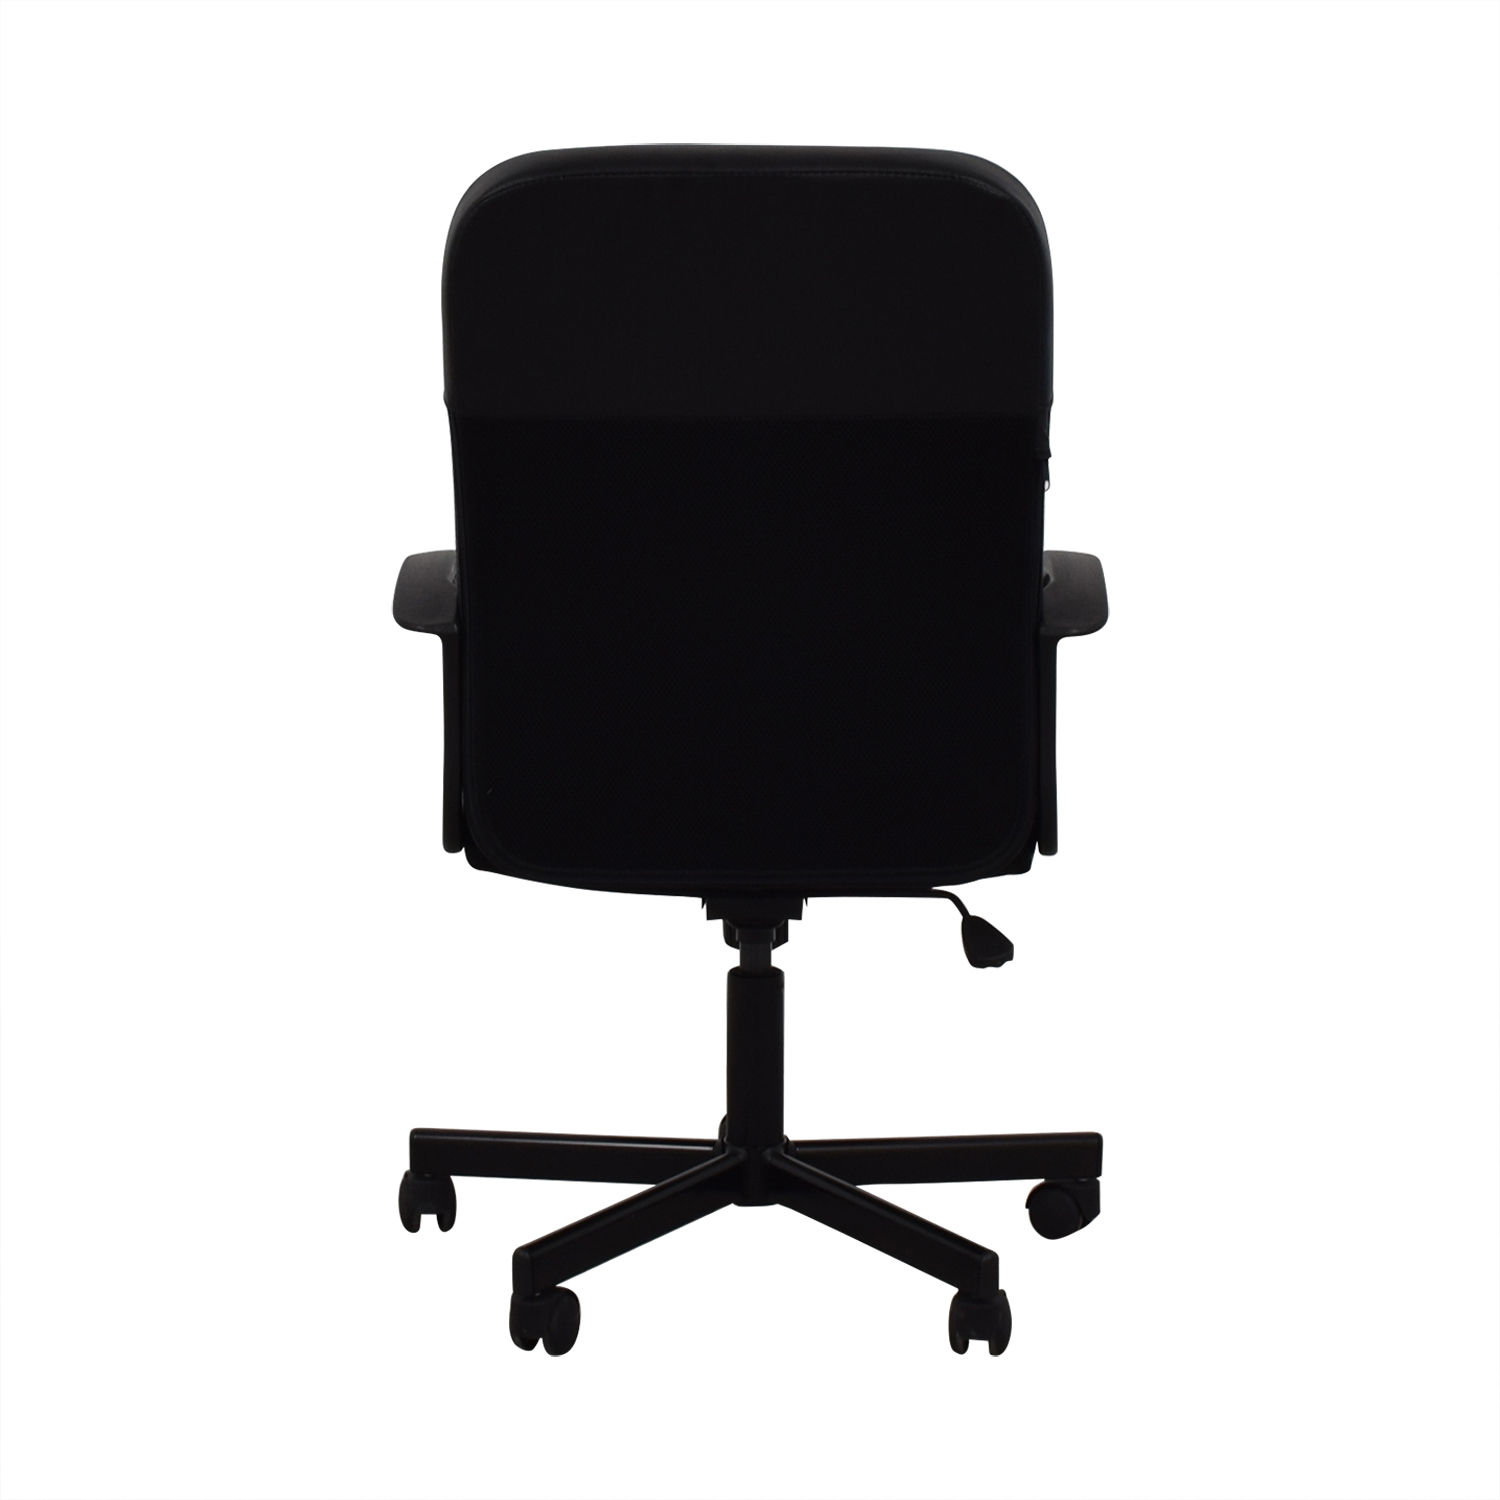 IKEA IKEA Renberget Office Chair used